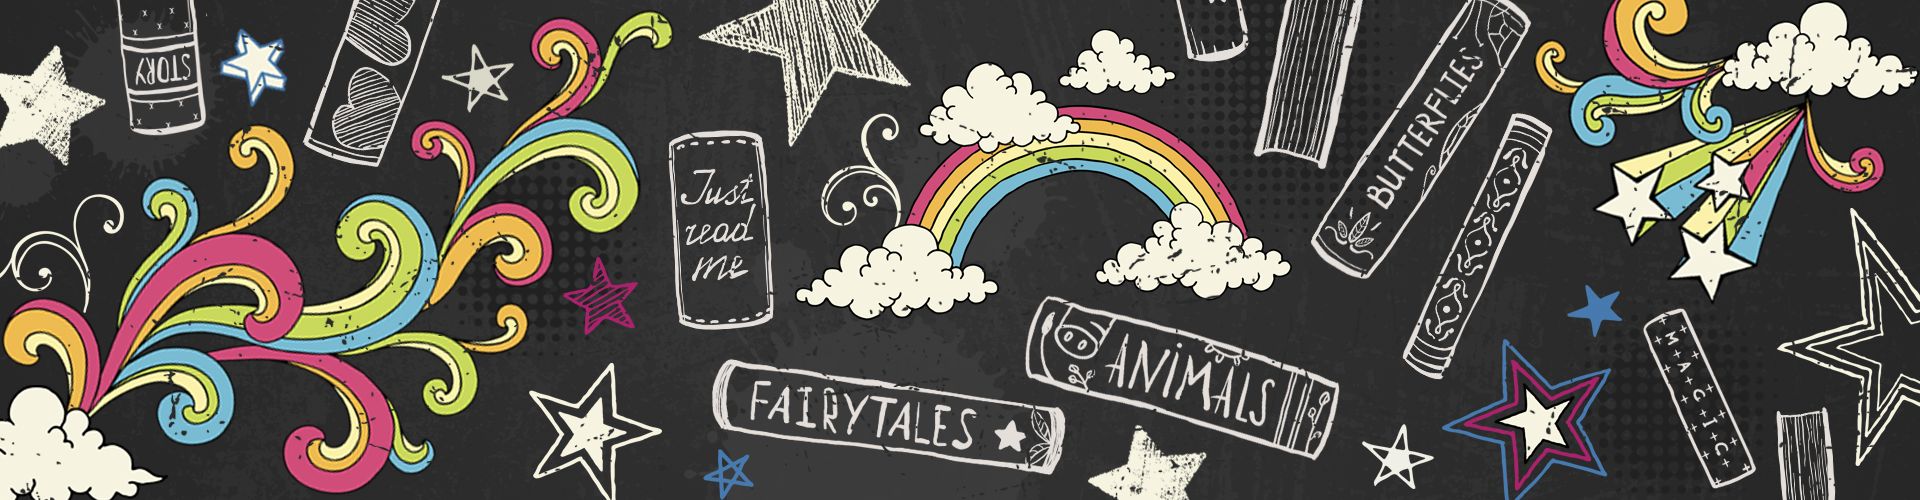 Kids Page header: rainbows, books and stars chalkboard drawings